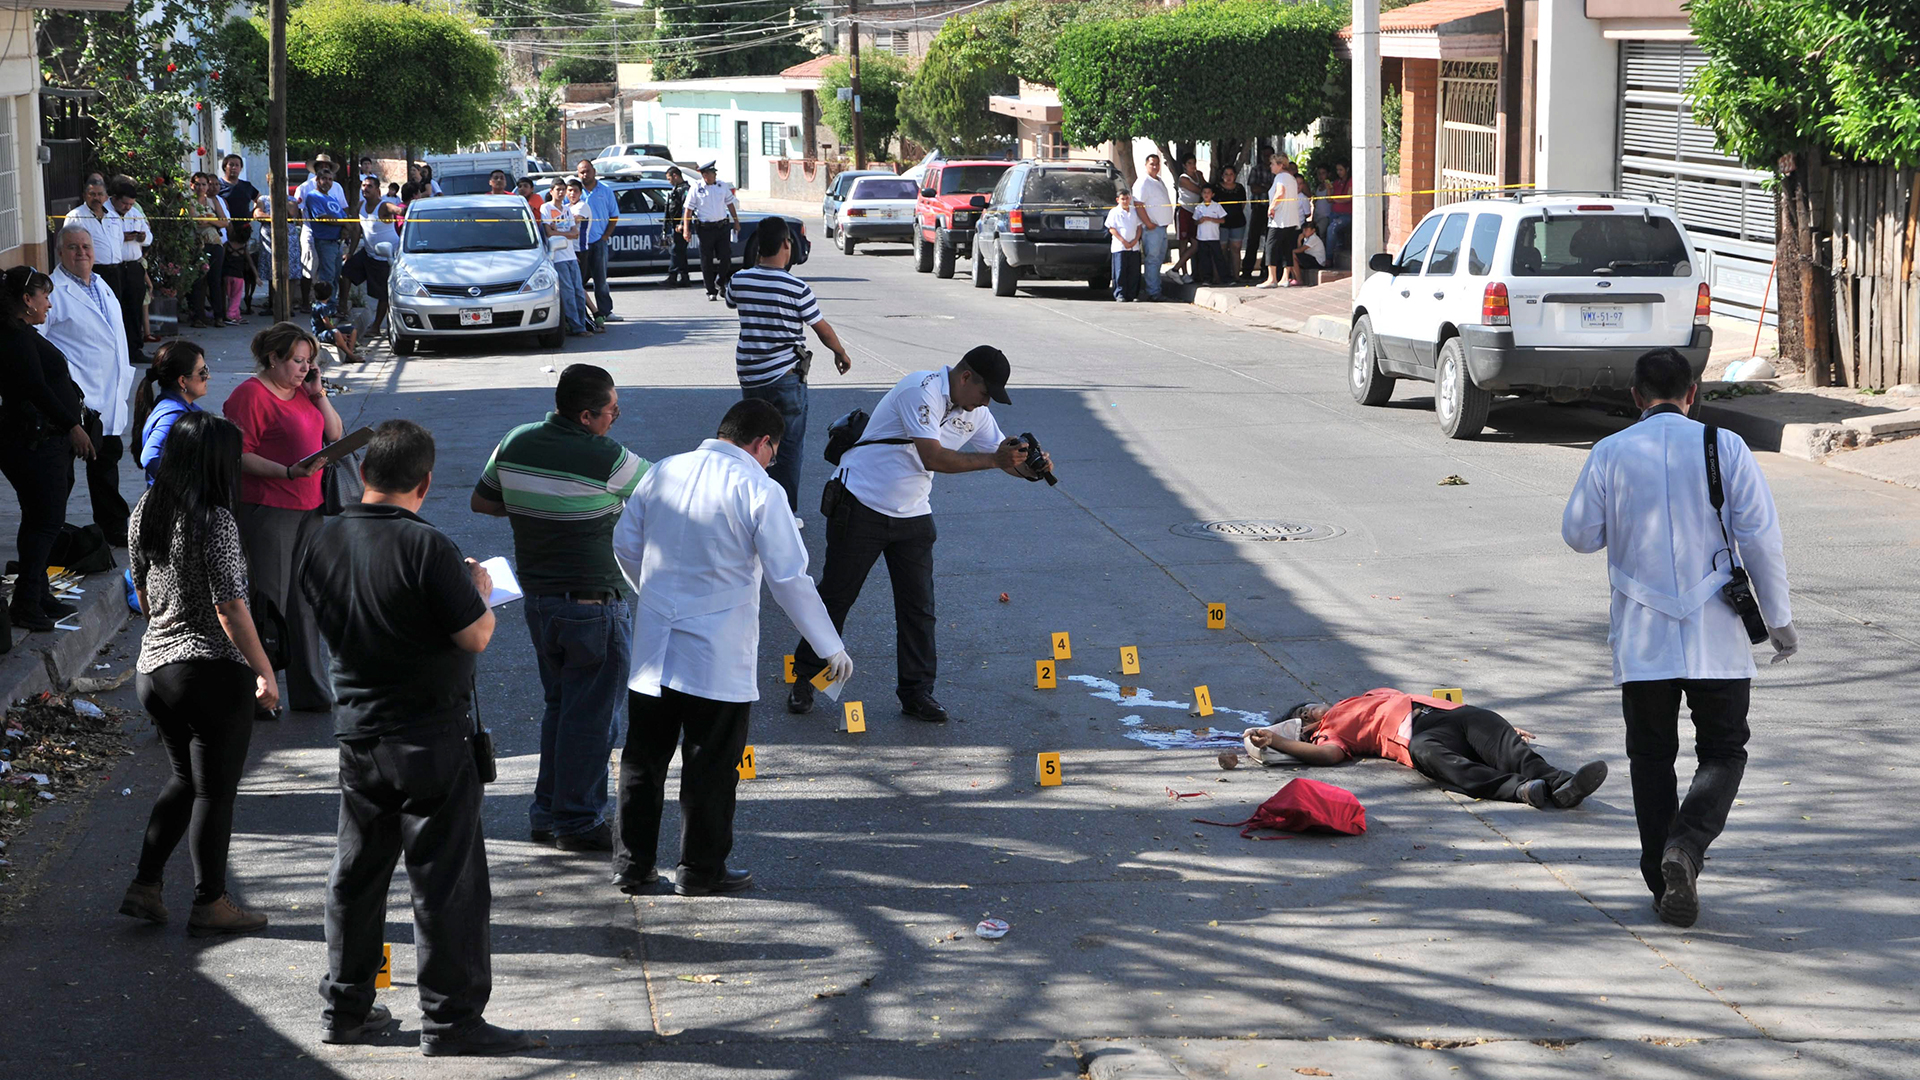 violence in mexico Pre-election violence in mexico kills at least 94 people further violence anticipated ahead of july 1 elections political violence in mexico has resulted in the murders of at least 94 politicians, including candidates for the upcoming july elections, and their family members between september 2017 and mid-may 2018.